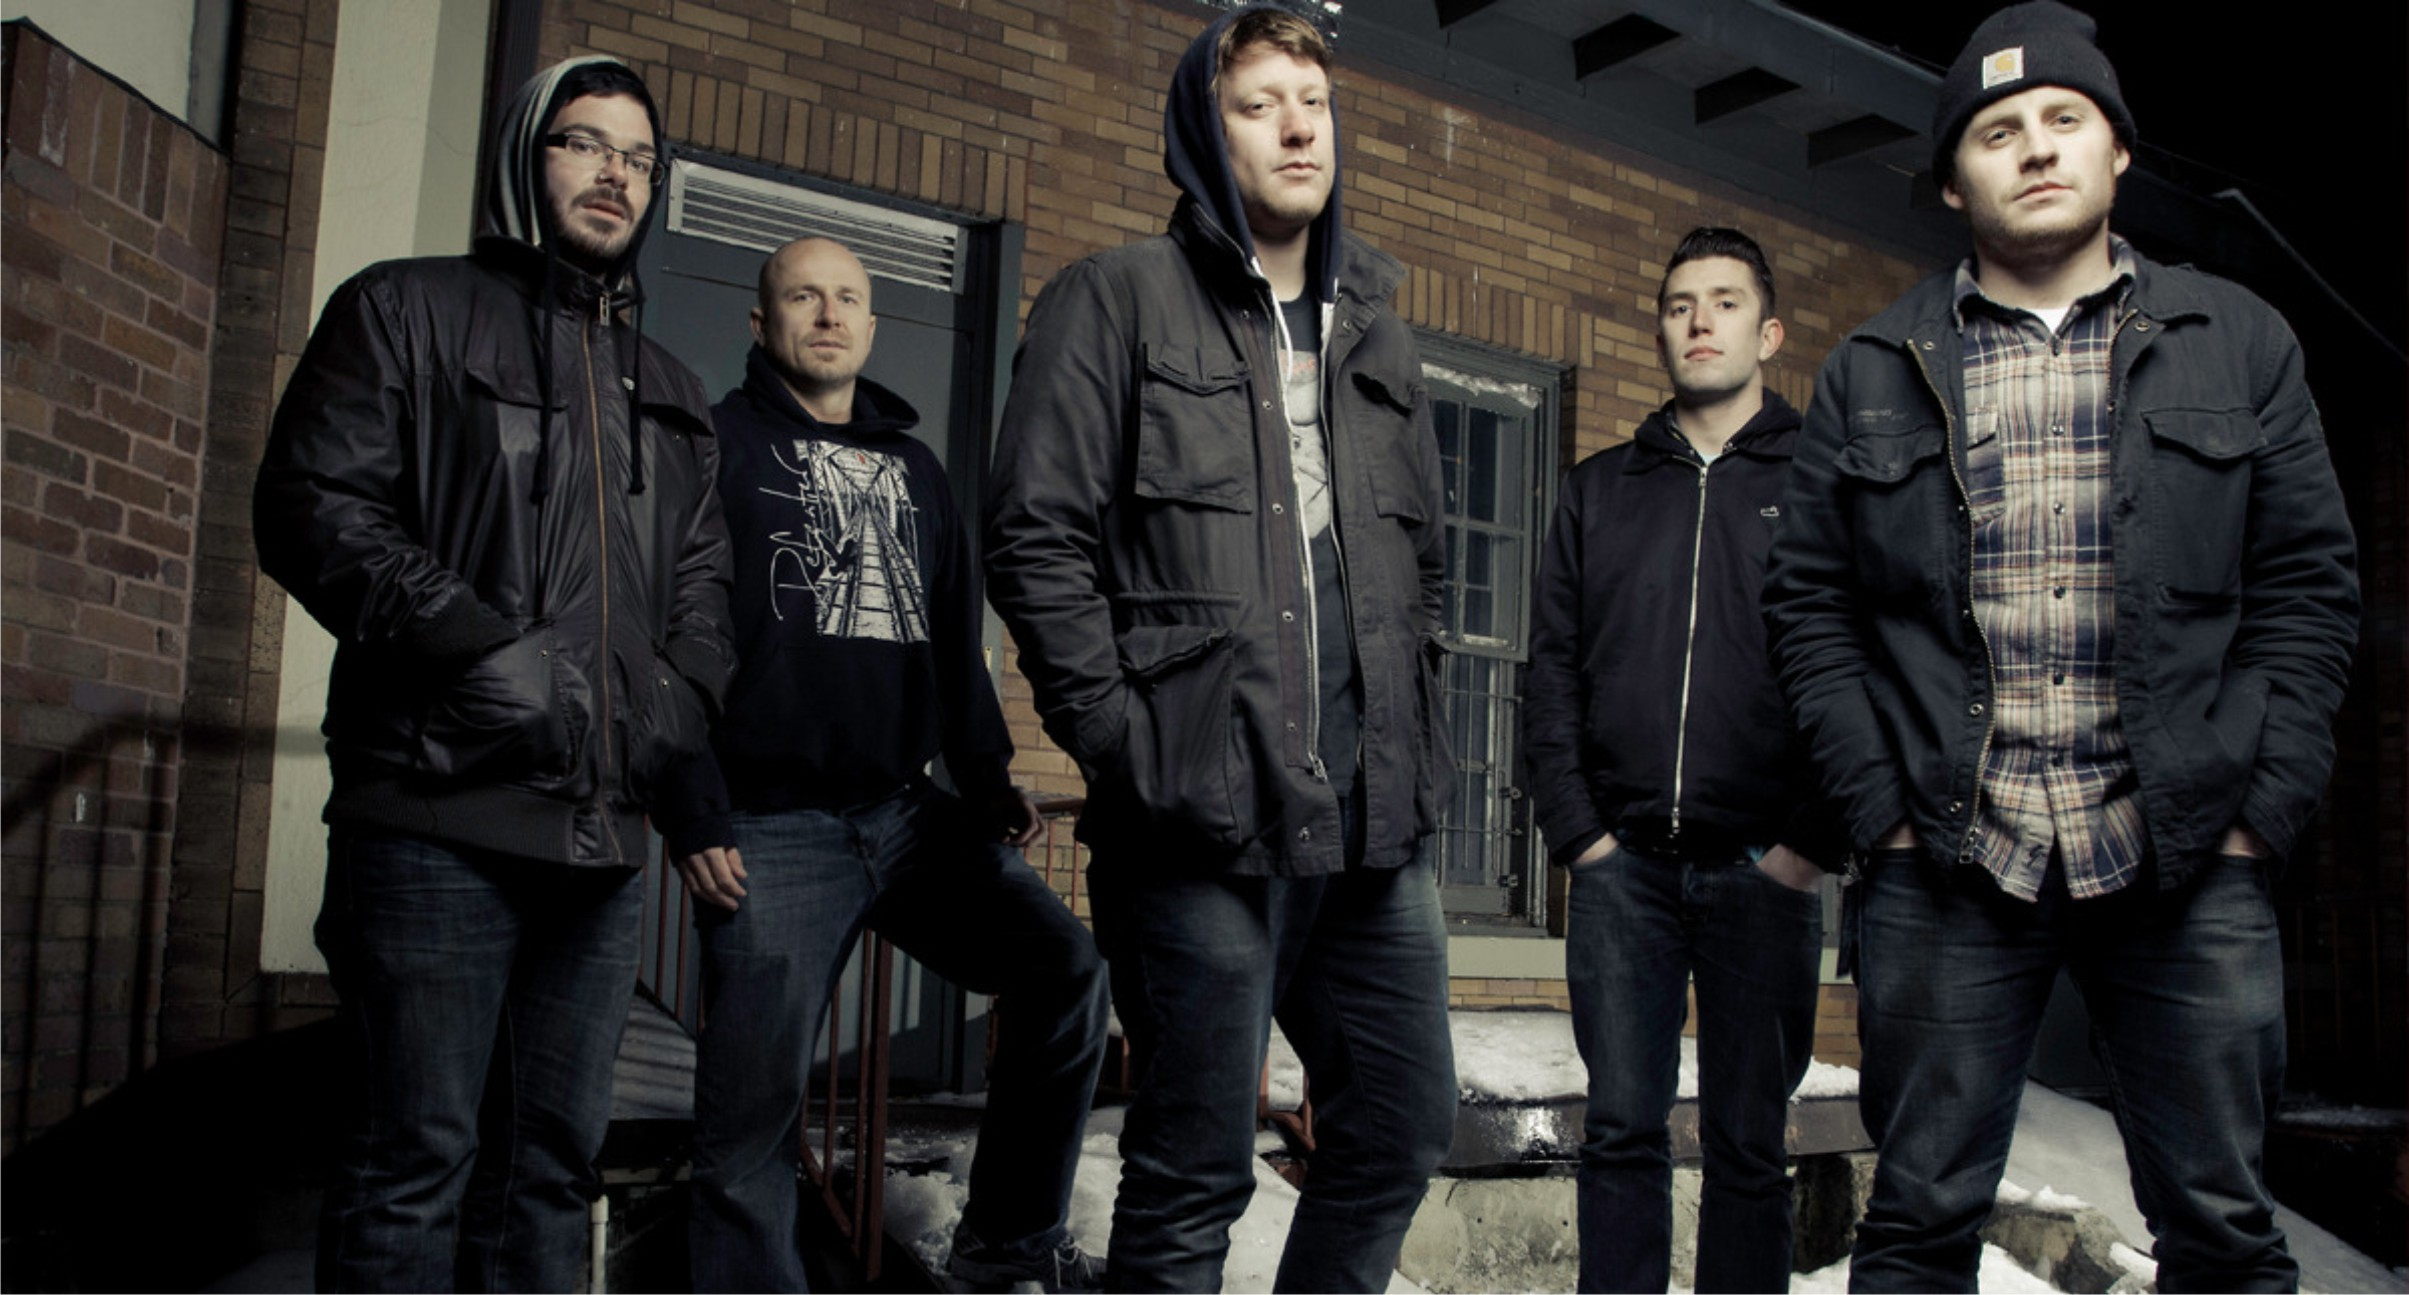 Comeback Kid are coming to tour South Africa